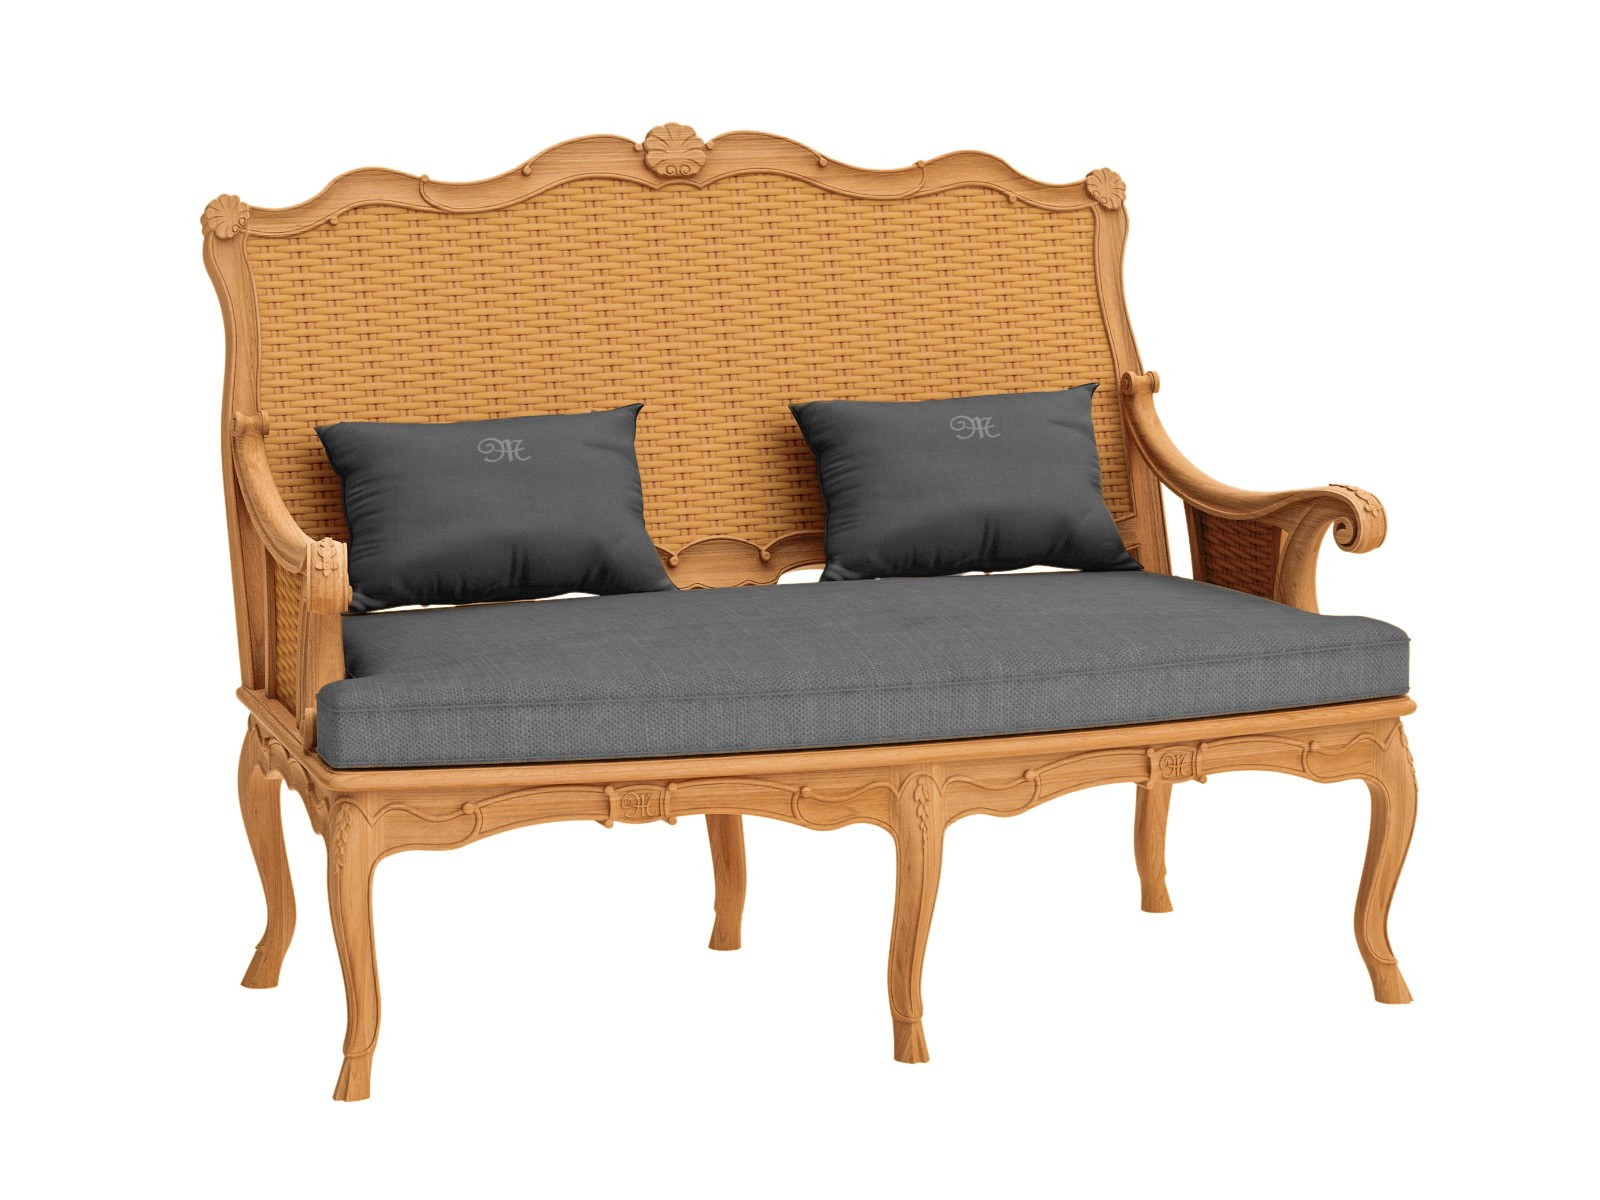 Fleur De Lys Garden Sofa By Astello Design Dominique Malcor Thierry Massant